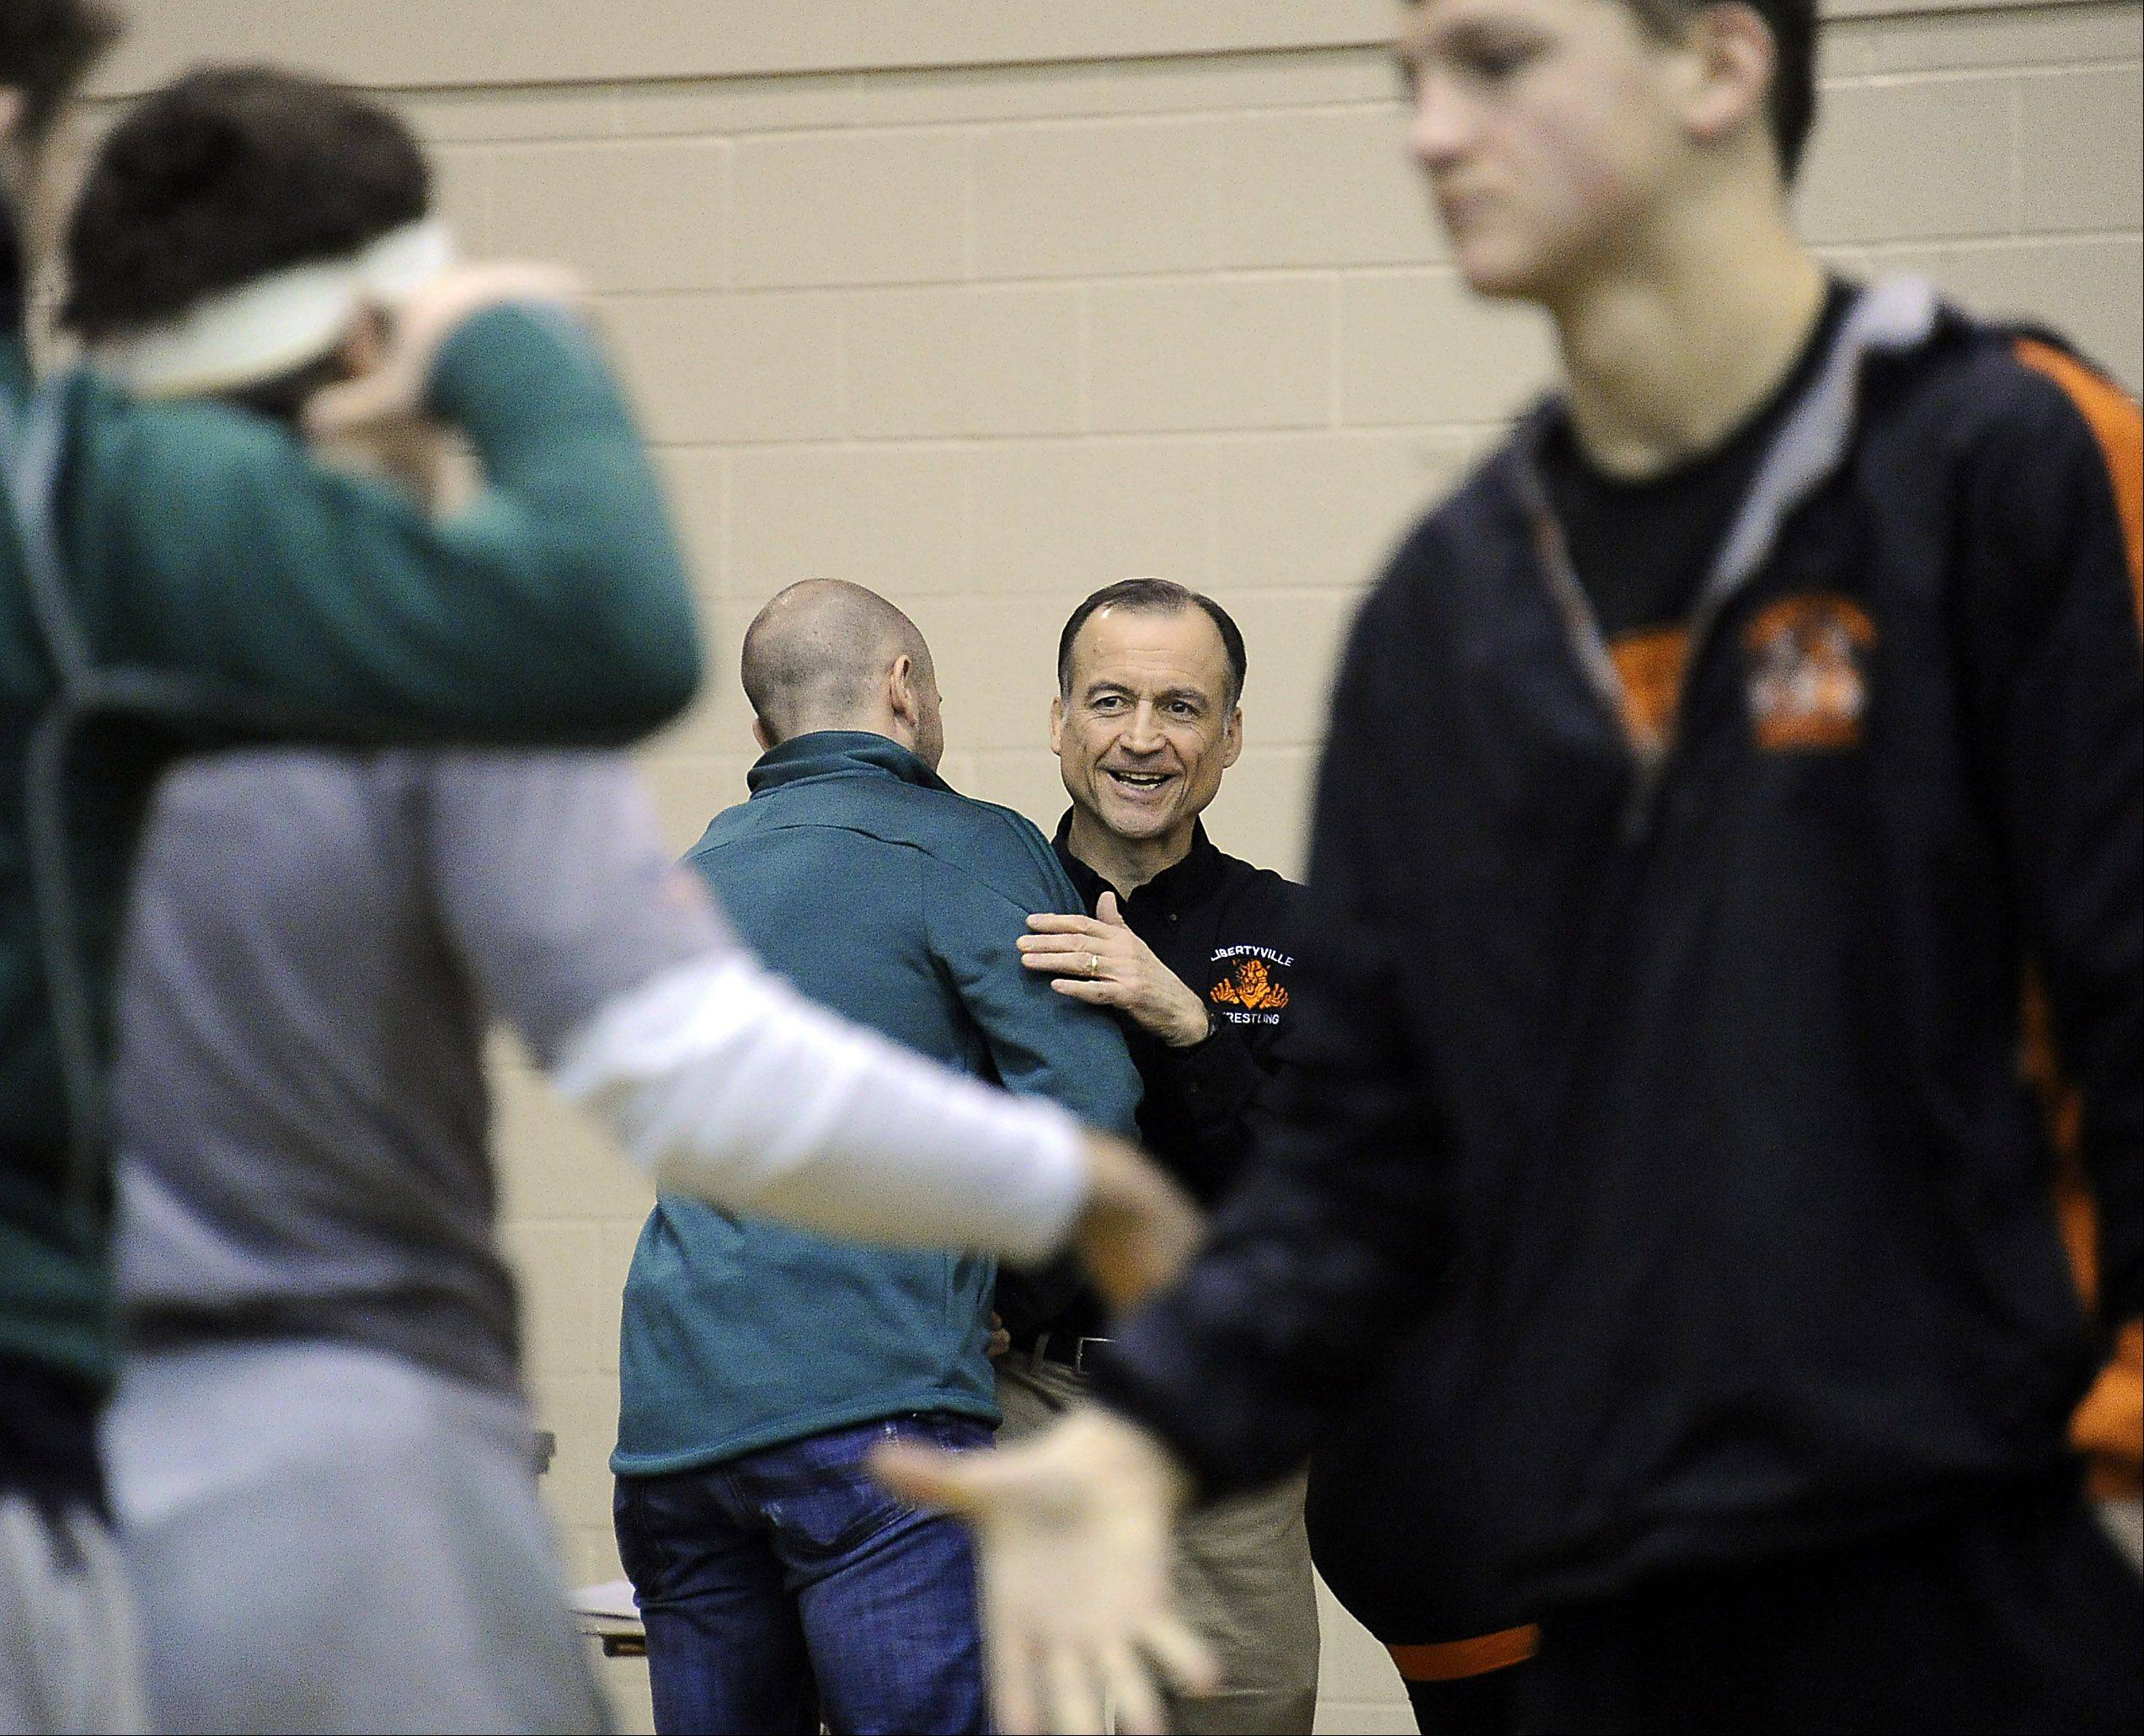 Libertyville wrestling coach Dale Eggert is congratulated by the coaching staff of Crystal Lake South after the Wildcats defeated the Gators in Saturday�s quad at Schaumburg. Eggert�s team later topped Naperville Central and Schaumburg, giving him 500 career coaching triumphs.